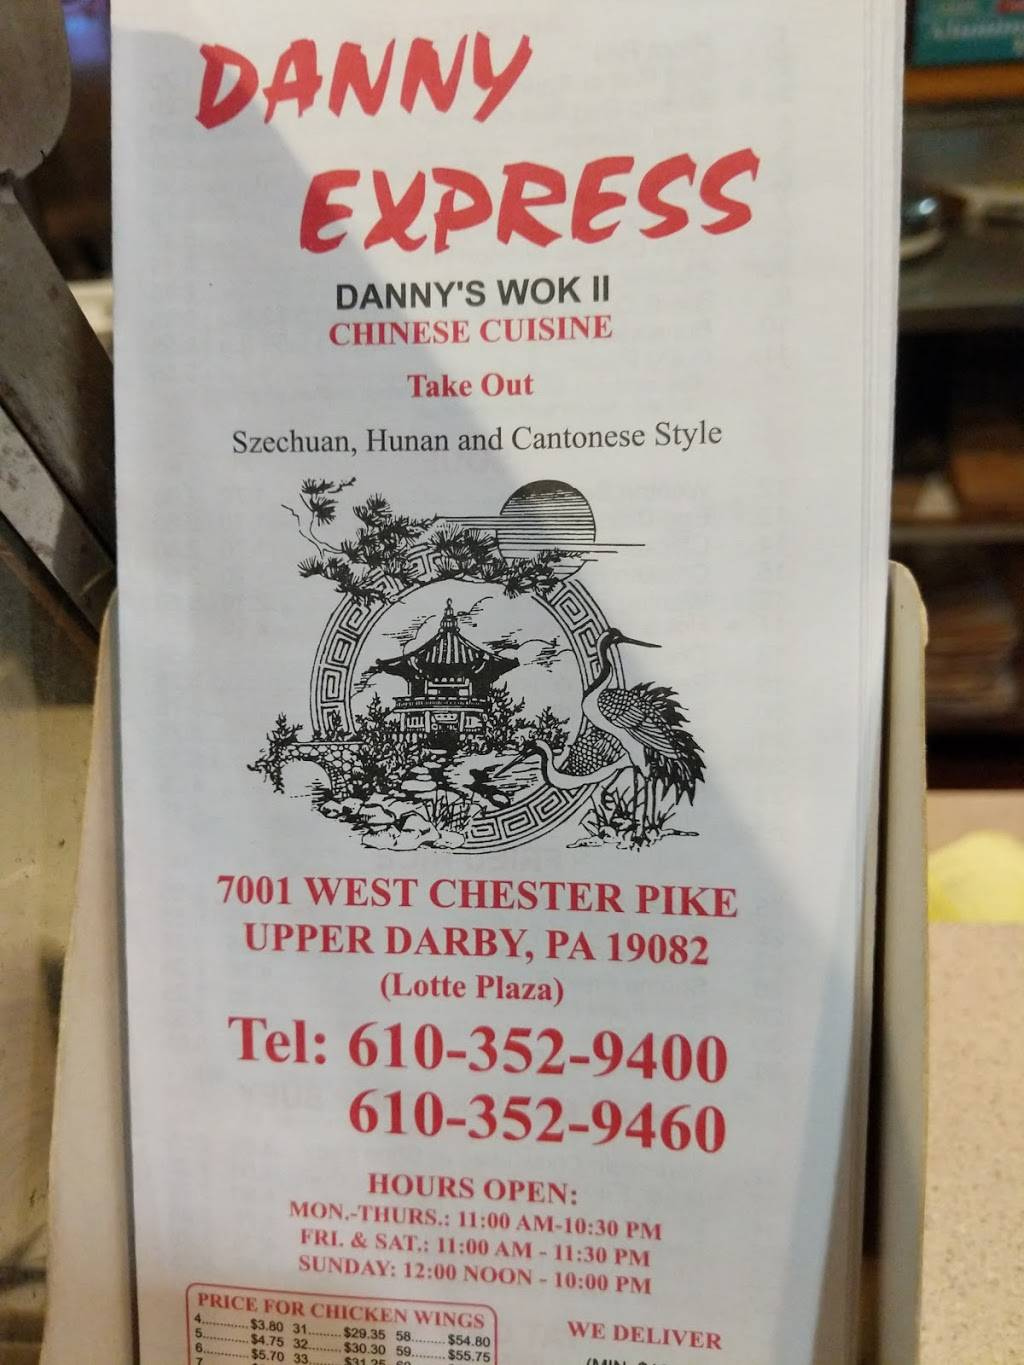 Danny Express   meal delivery   7001 West Chester Pike # A, Upper Darby, PA 19082, USA   6103529400 OR +1 610-352-9400